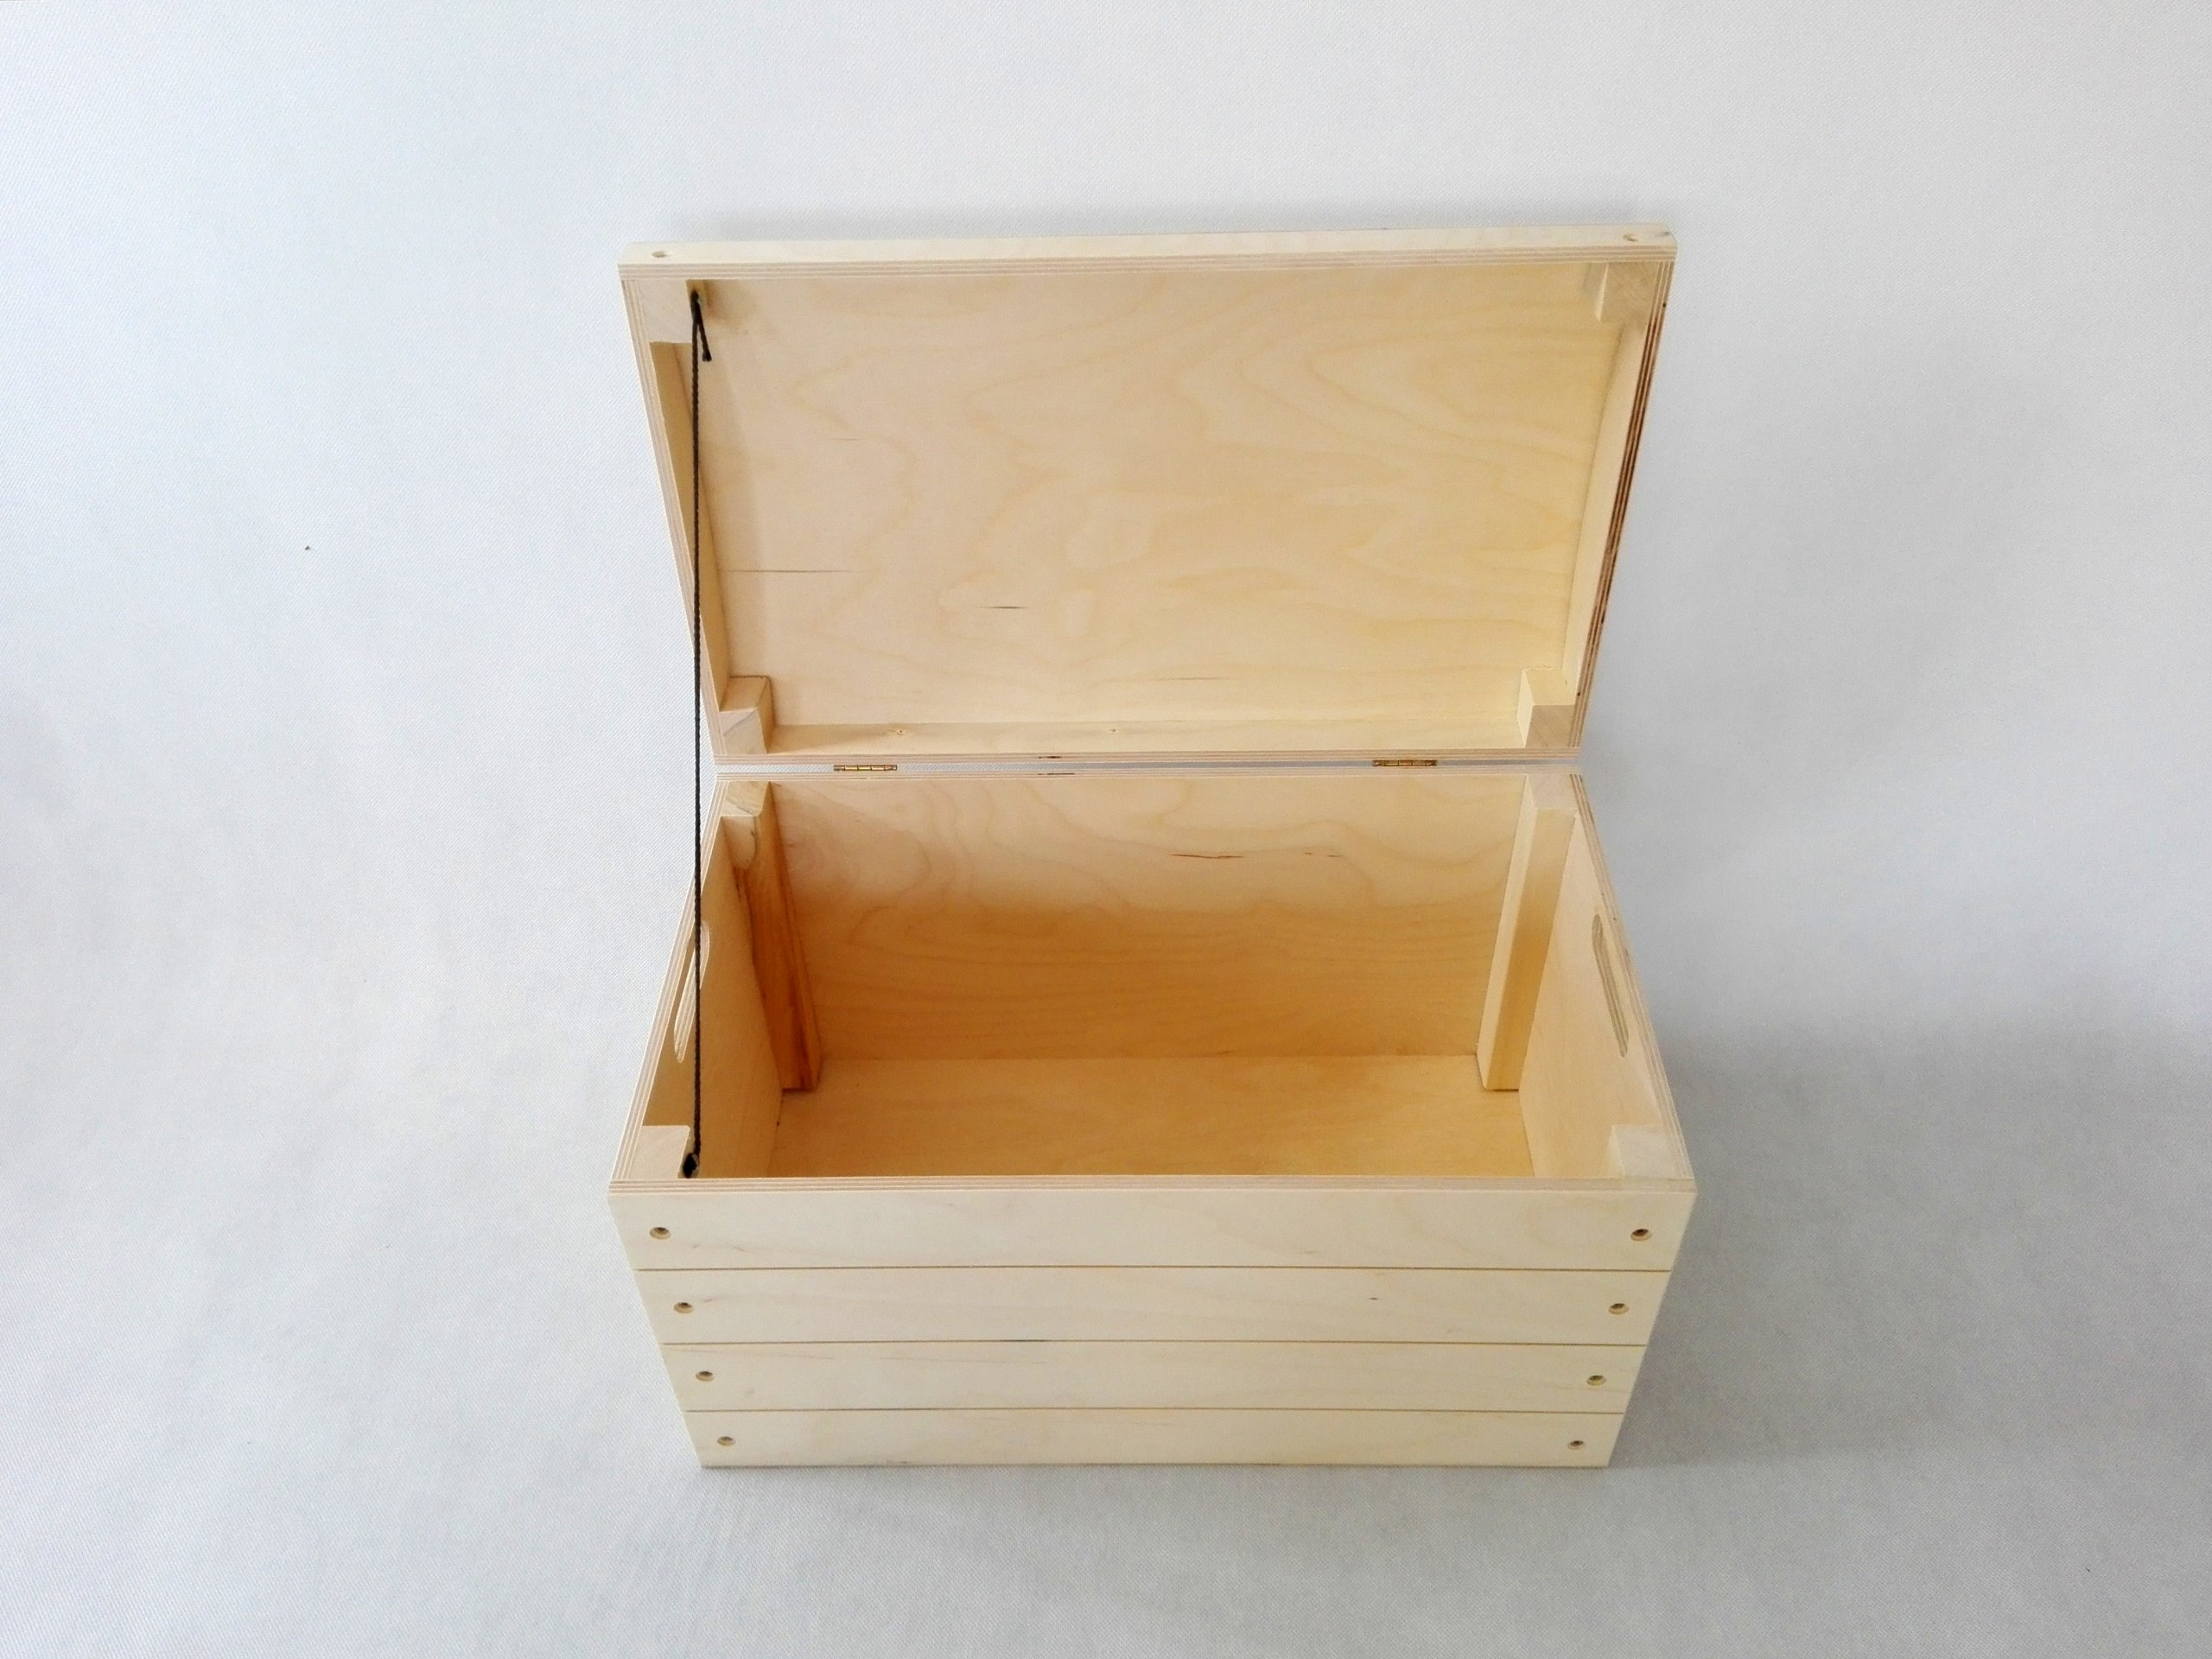 Wooden trunk for toys